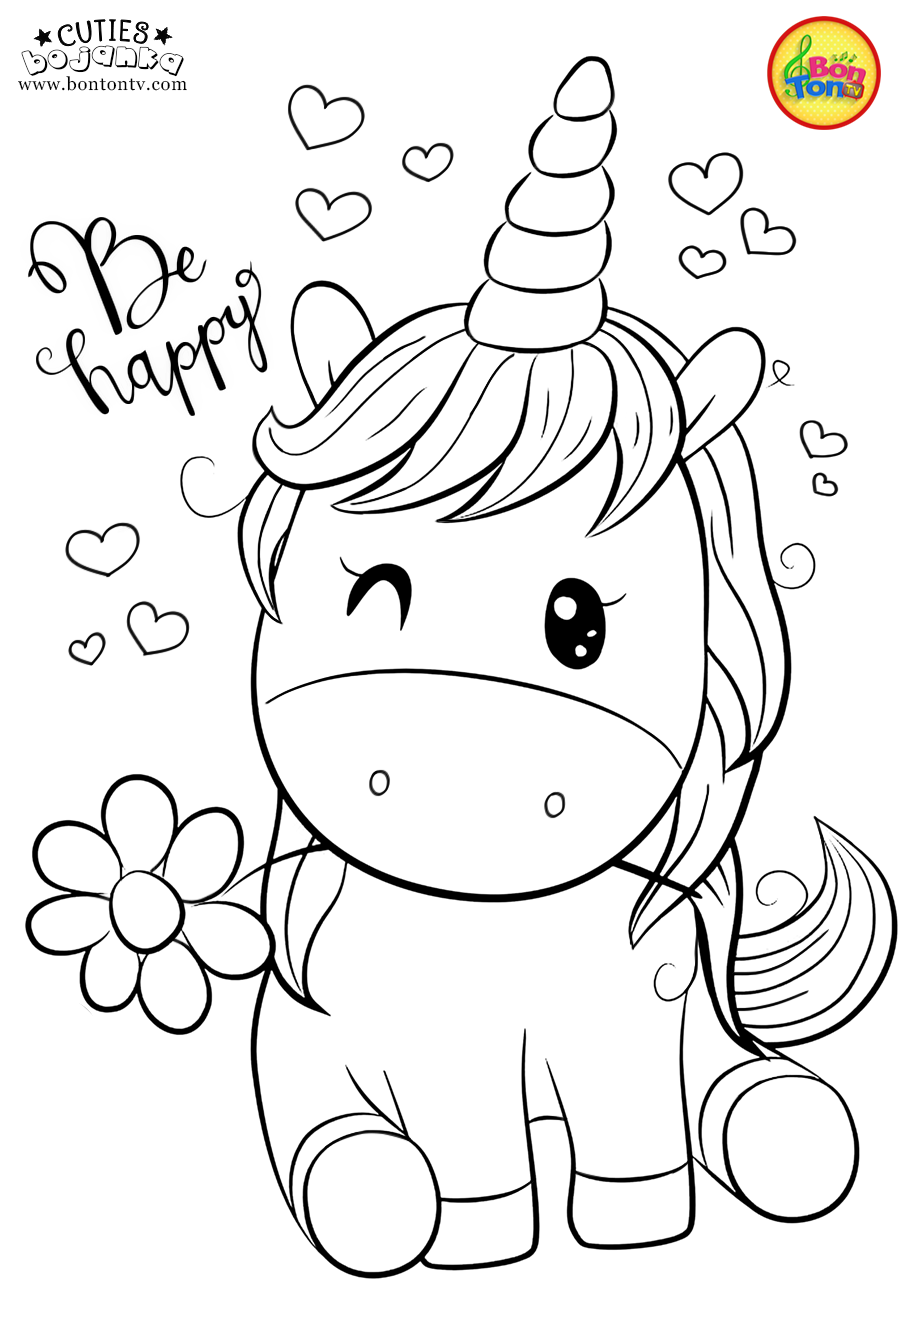 Cuties Coloring Pages For Kids Free Preschool Printables Slatkice Bojanke Cute Animal Co Unicorn Coloring Pages Cute Coloring Pages Animal Coloring Books